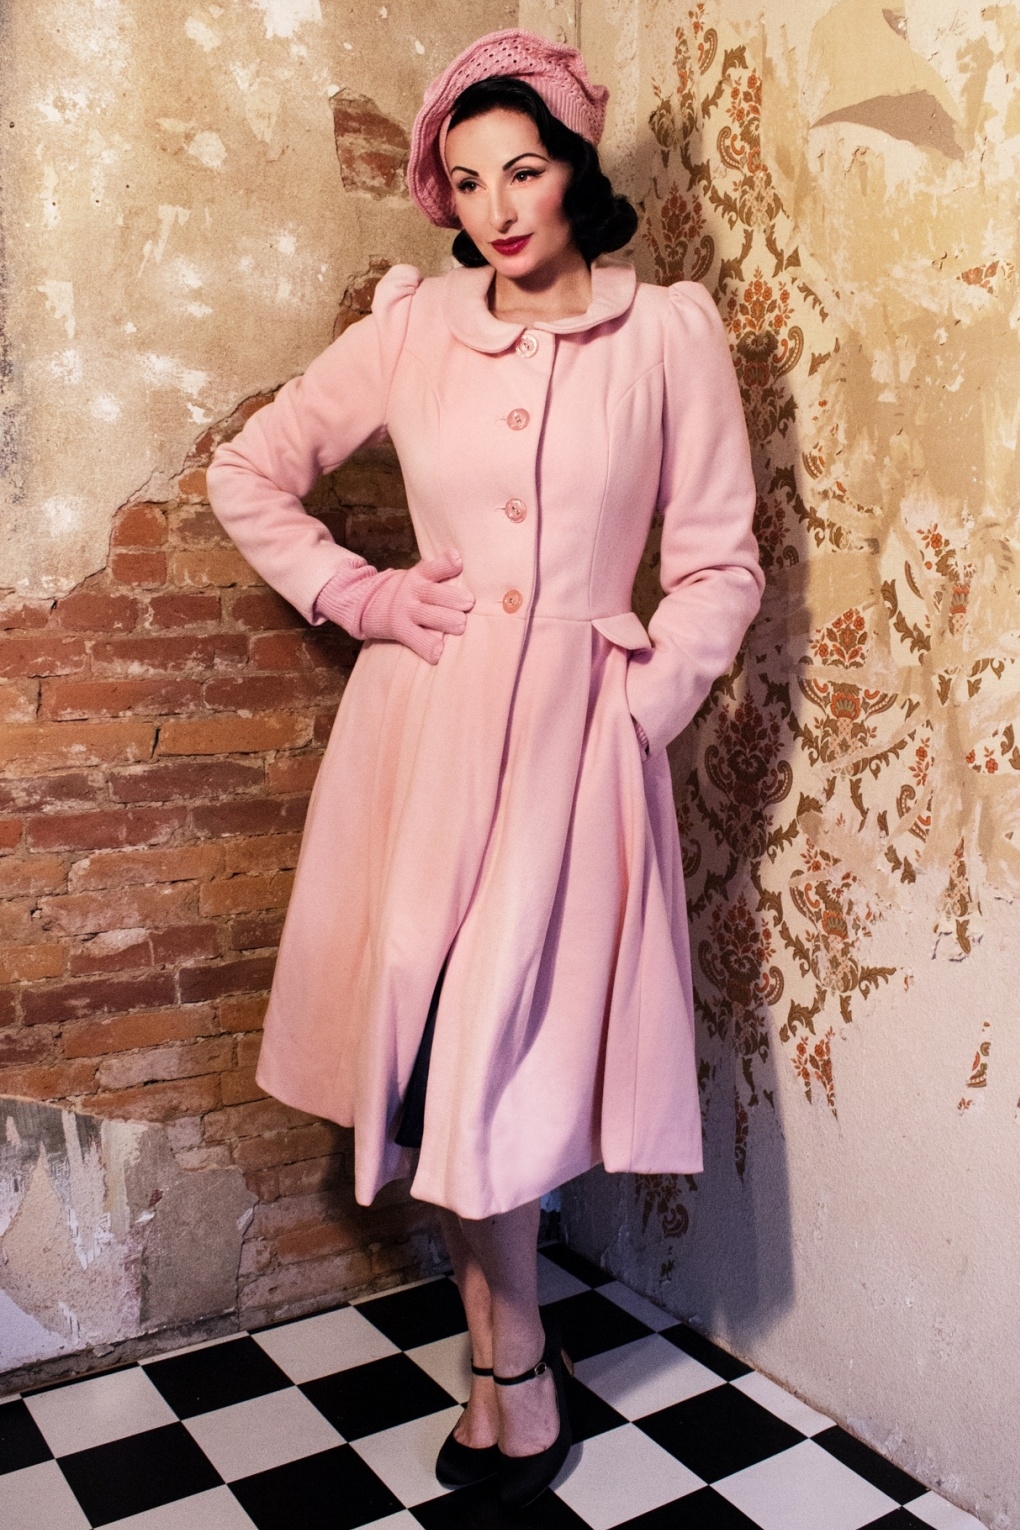 40s Swirly Doll coat with Peter Pan collar in Powder Pink wool